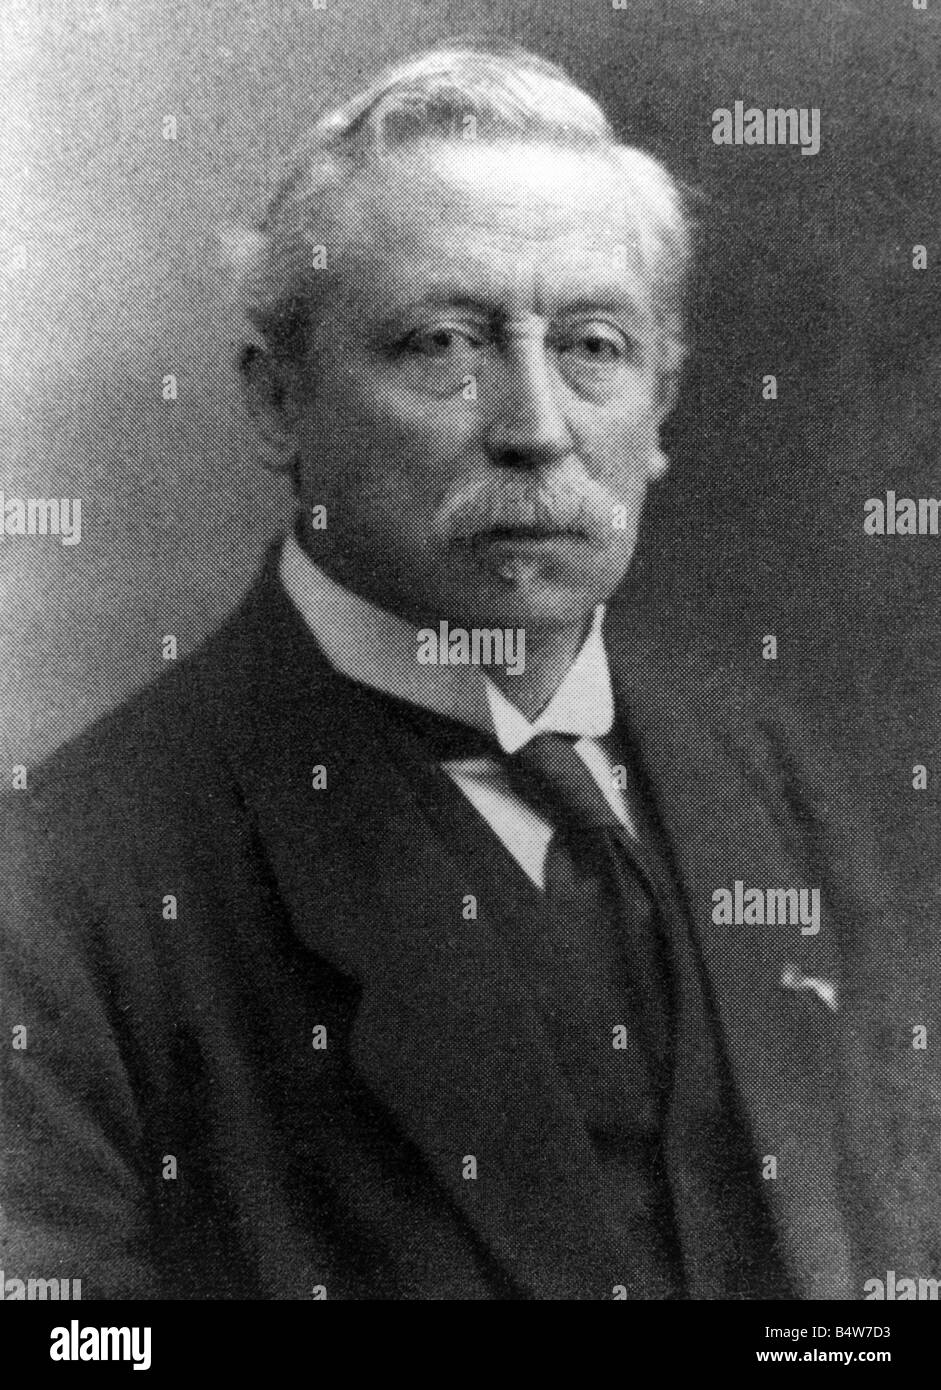 Eijkman, Christiaan, 11.8.1858 - 5.11.1930, Dutch physician, pathologist, bacteriologist, hygienist, portrait, photograph, - Stock Image